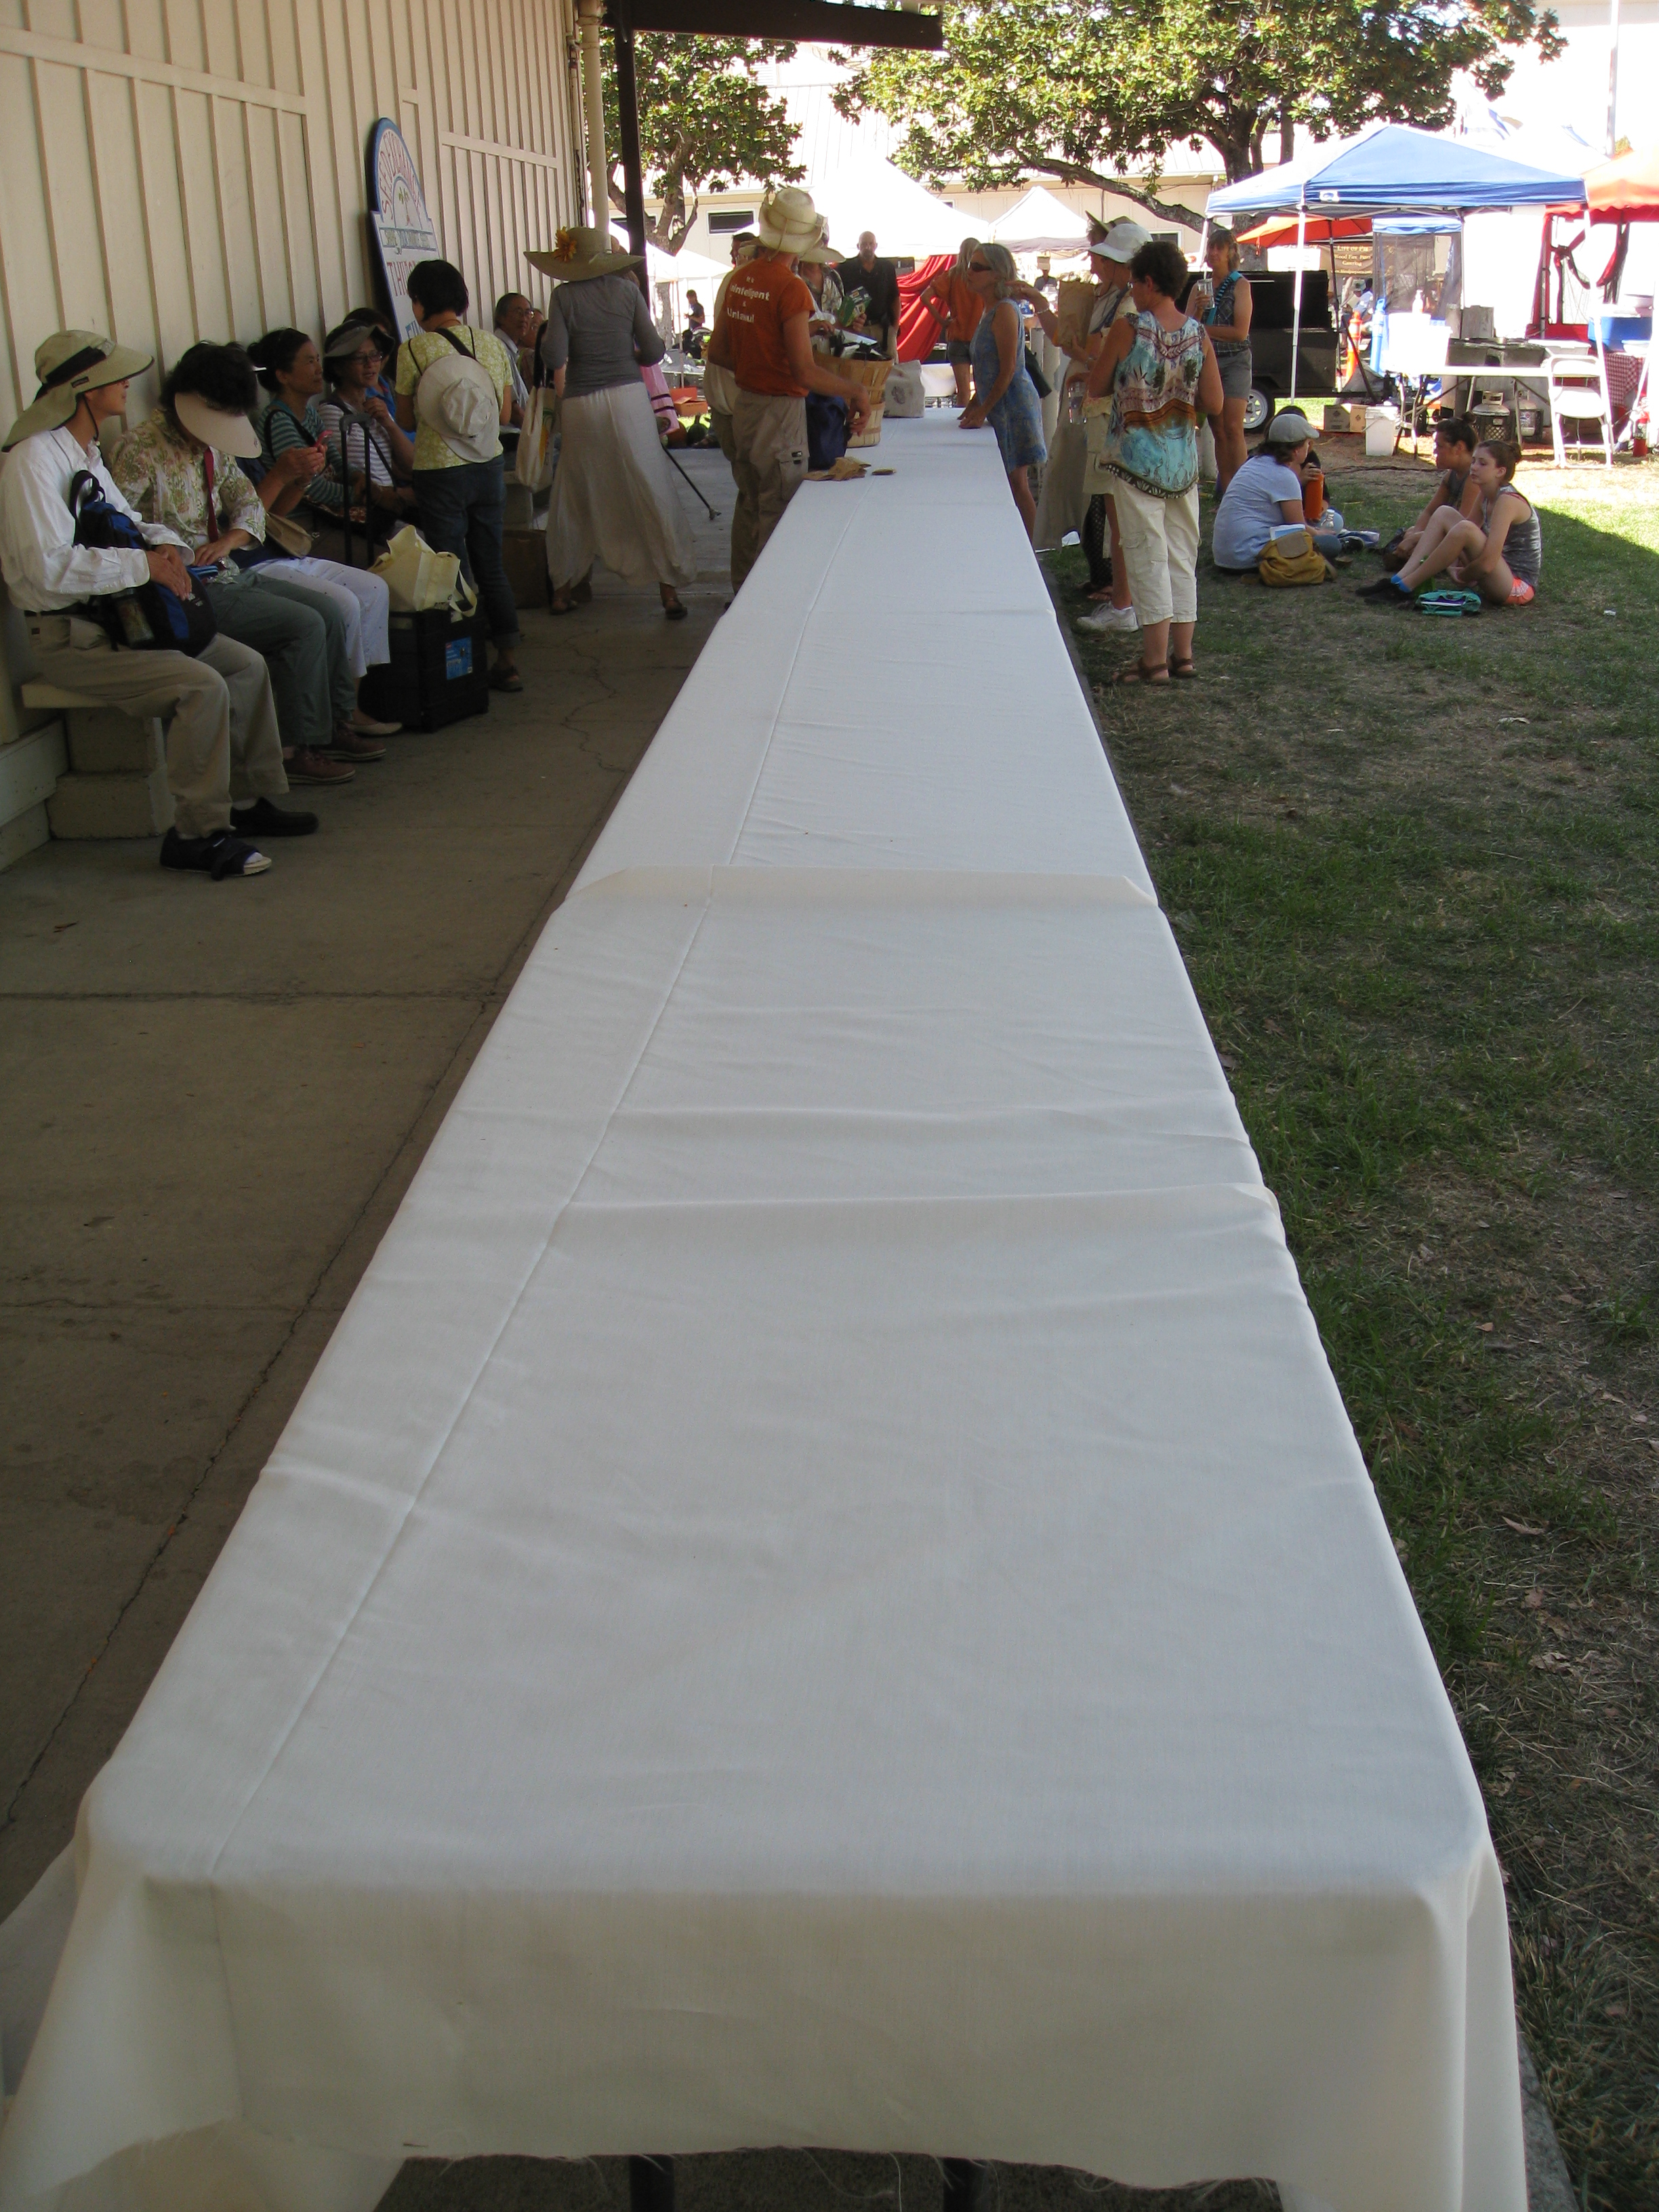 A long table sets the stage for the madness of the seed swap